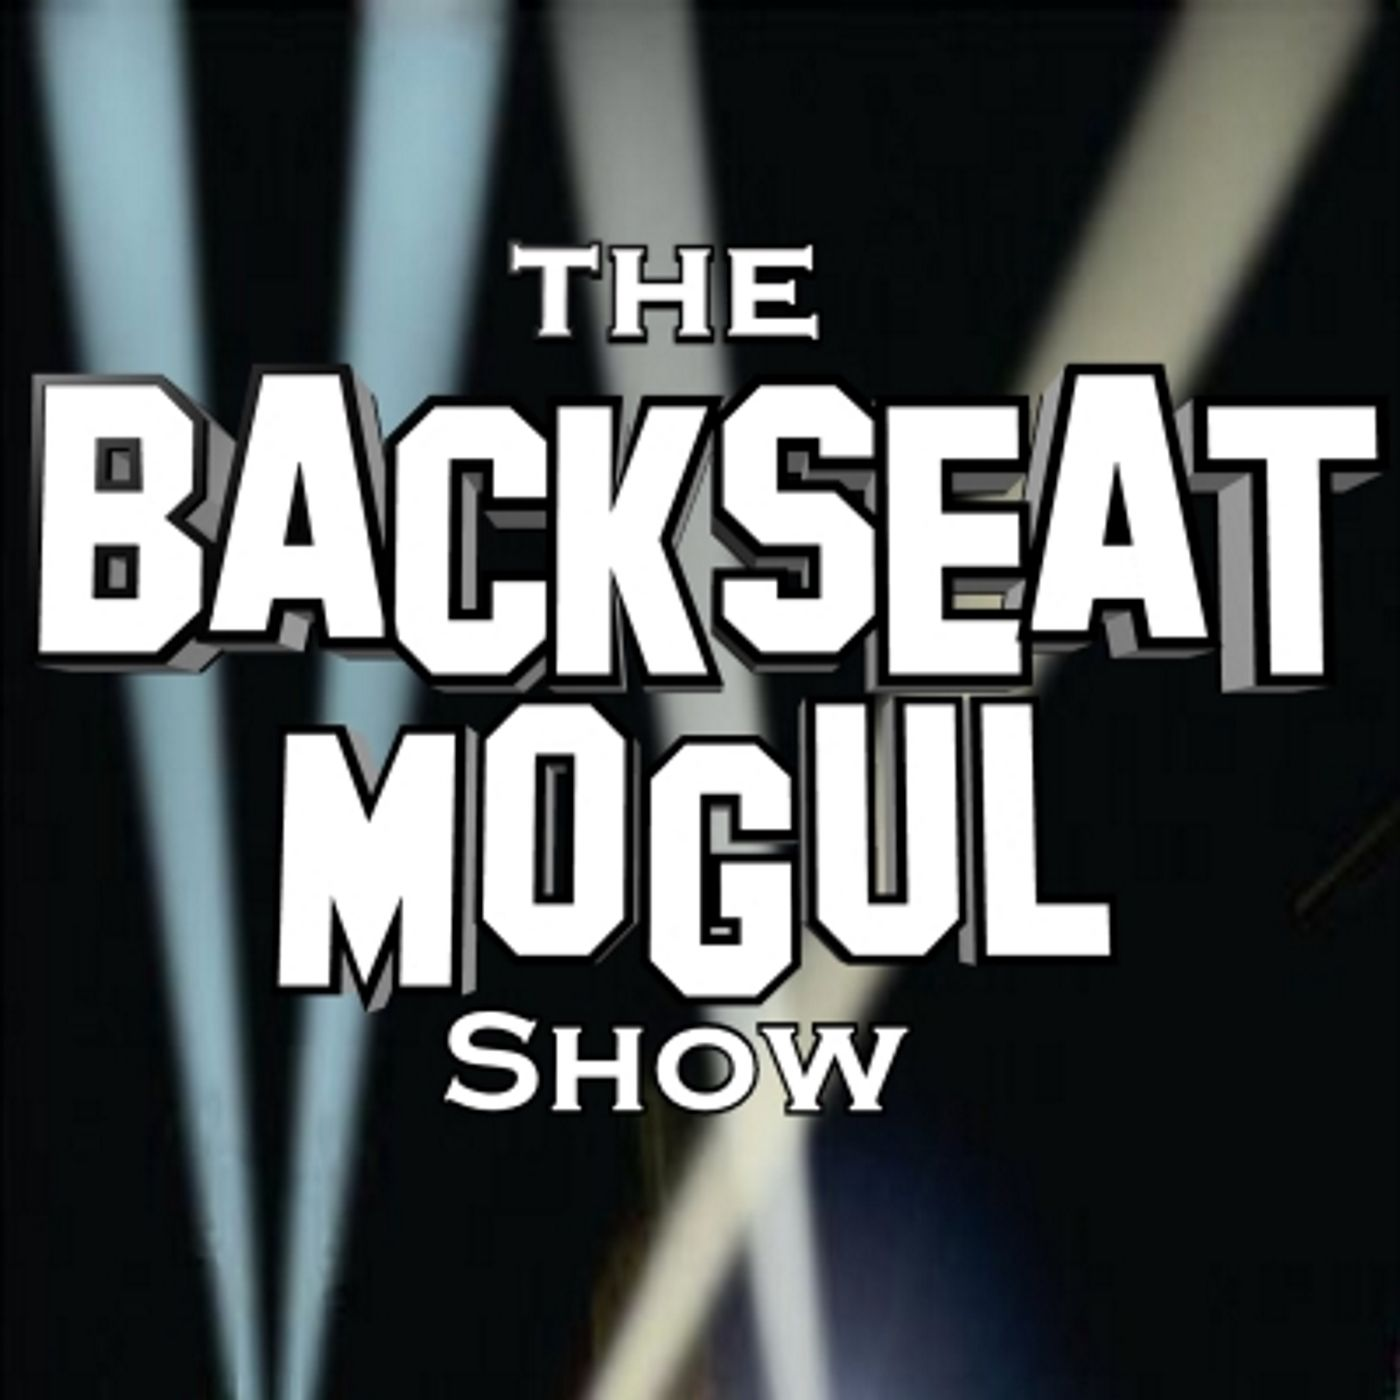 Netflix's The Crew and More | BACKSEAT MOGUL SHOW (02/20/21)